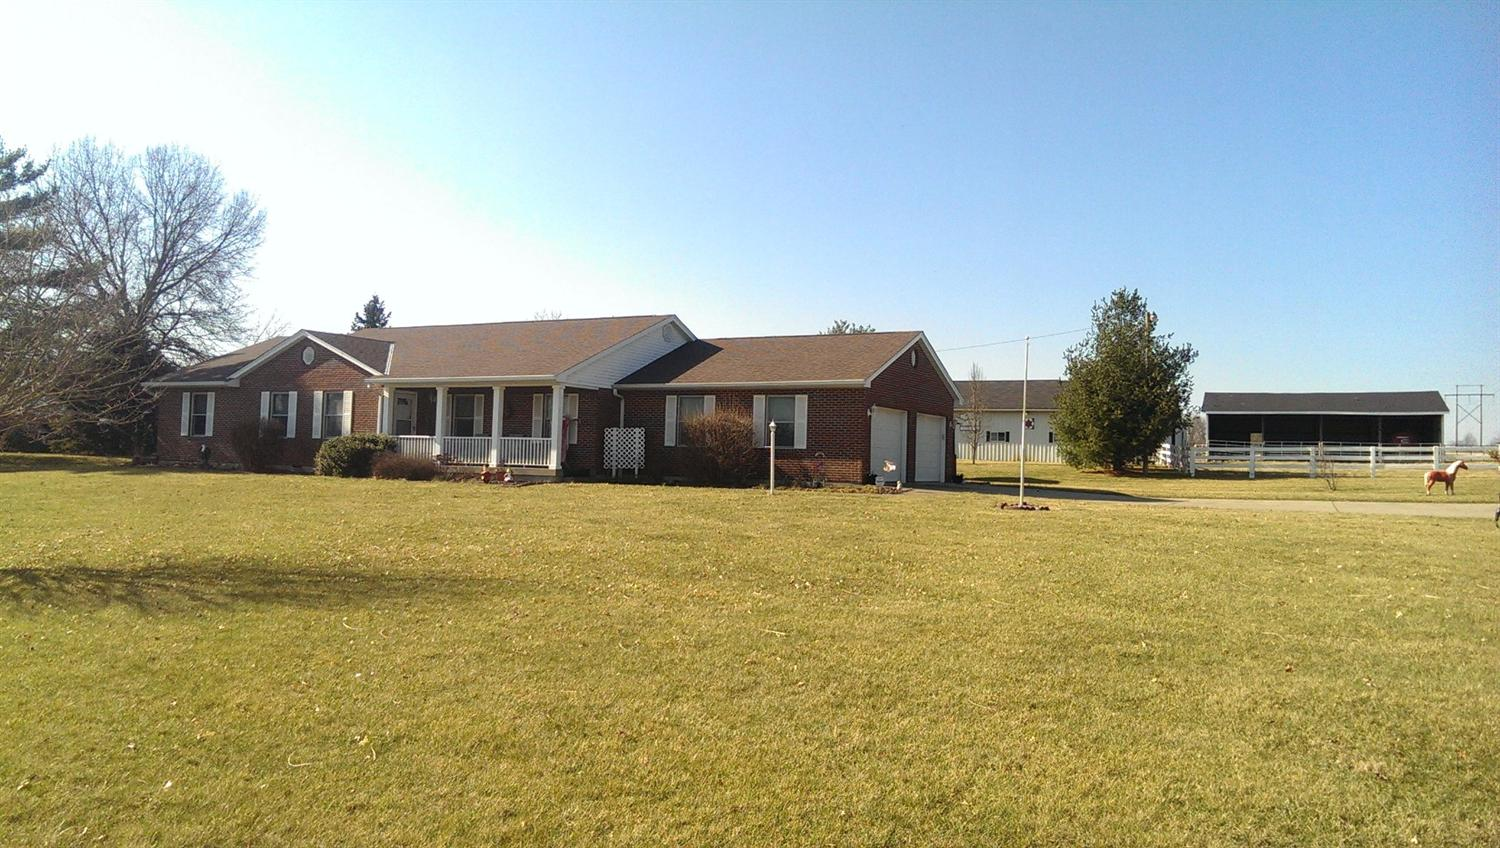 Photo 1 for 764 Stephenson Mill Rd Walton, KY 41094